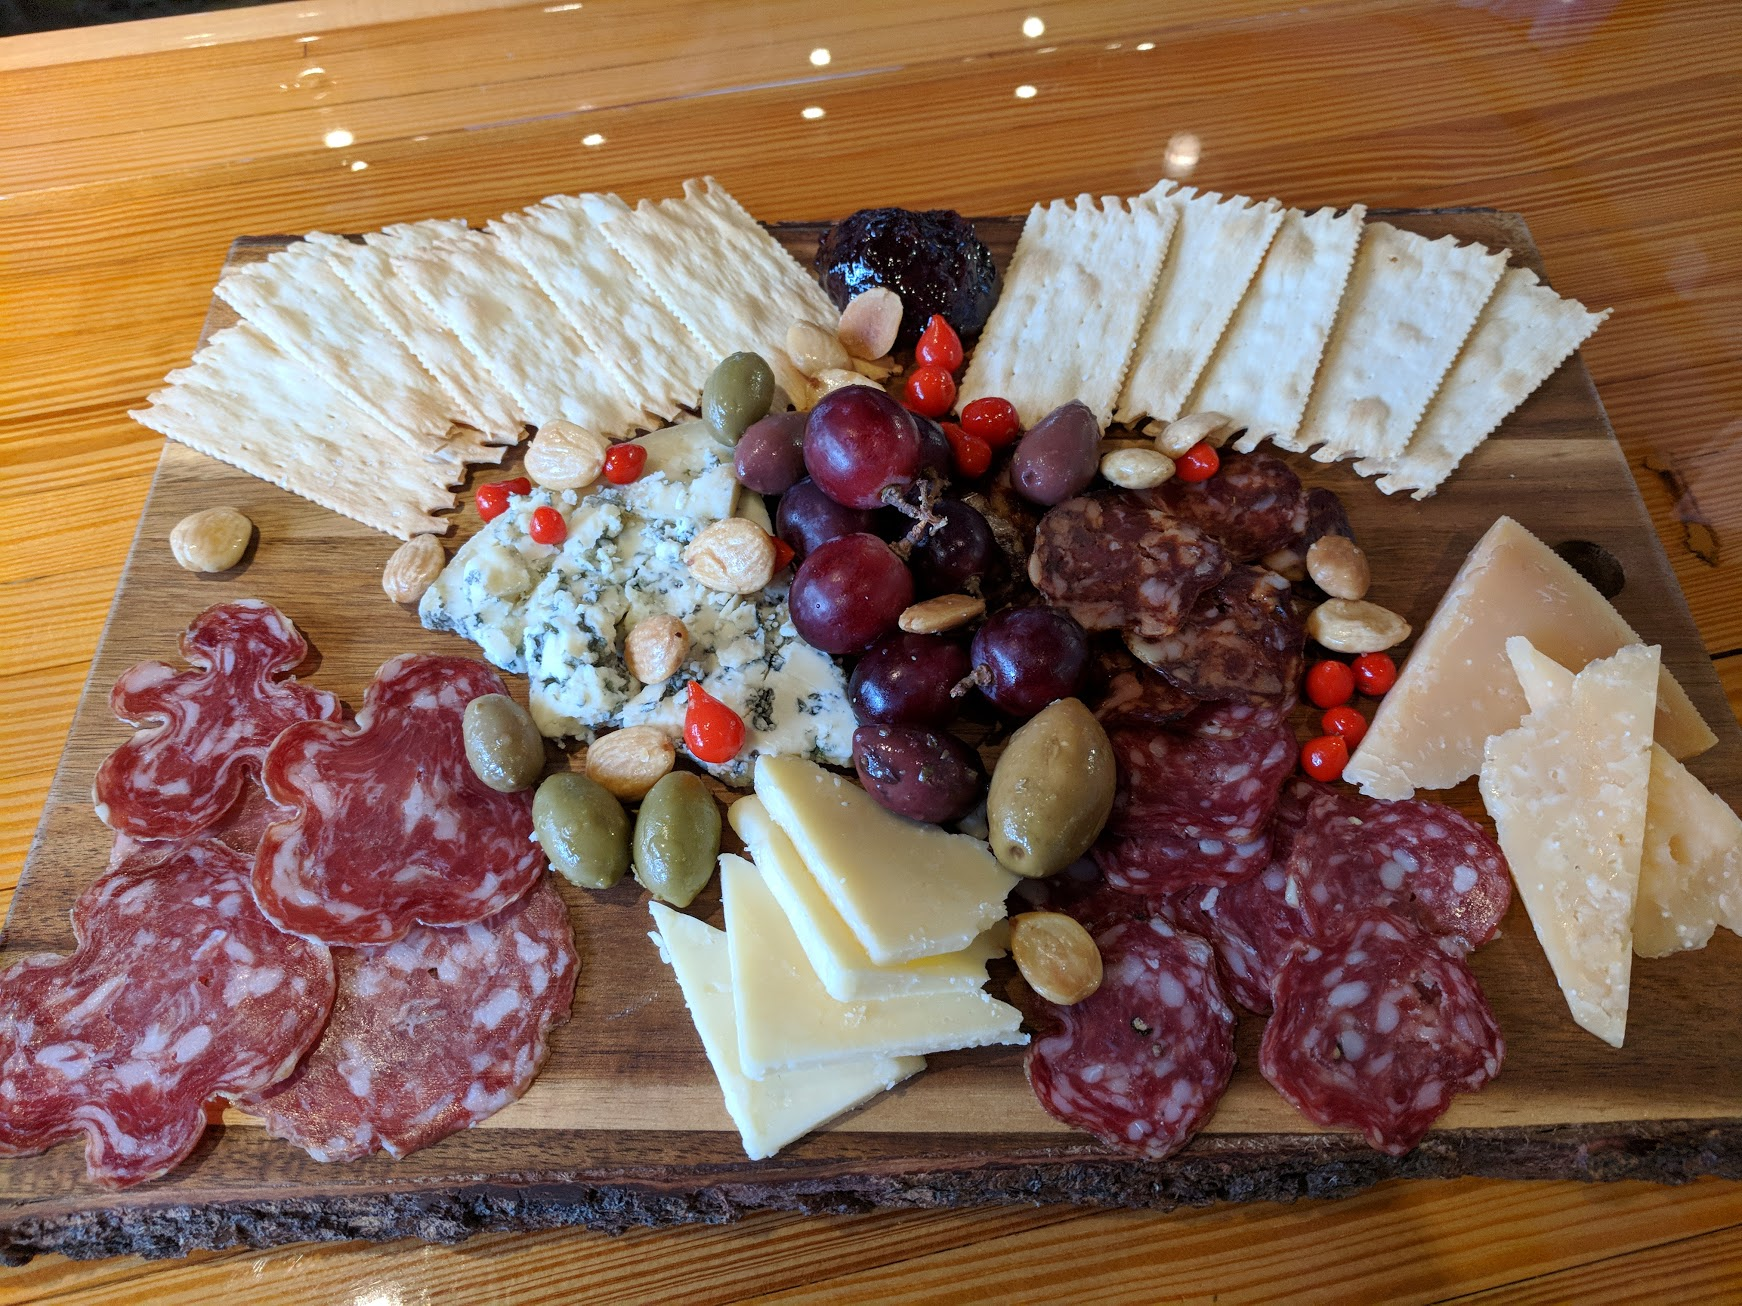 Domestic Charcuterie Board at Von Ebert Brewing. (photo by Nick Rivers)